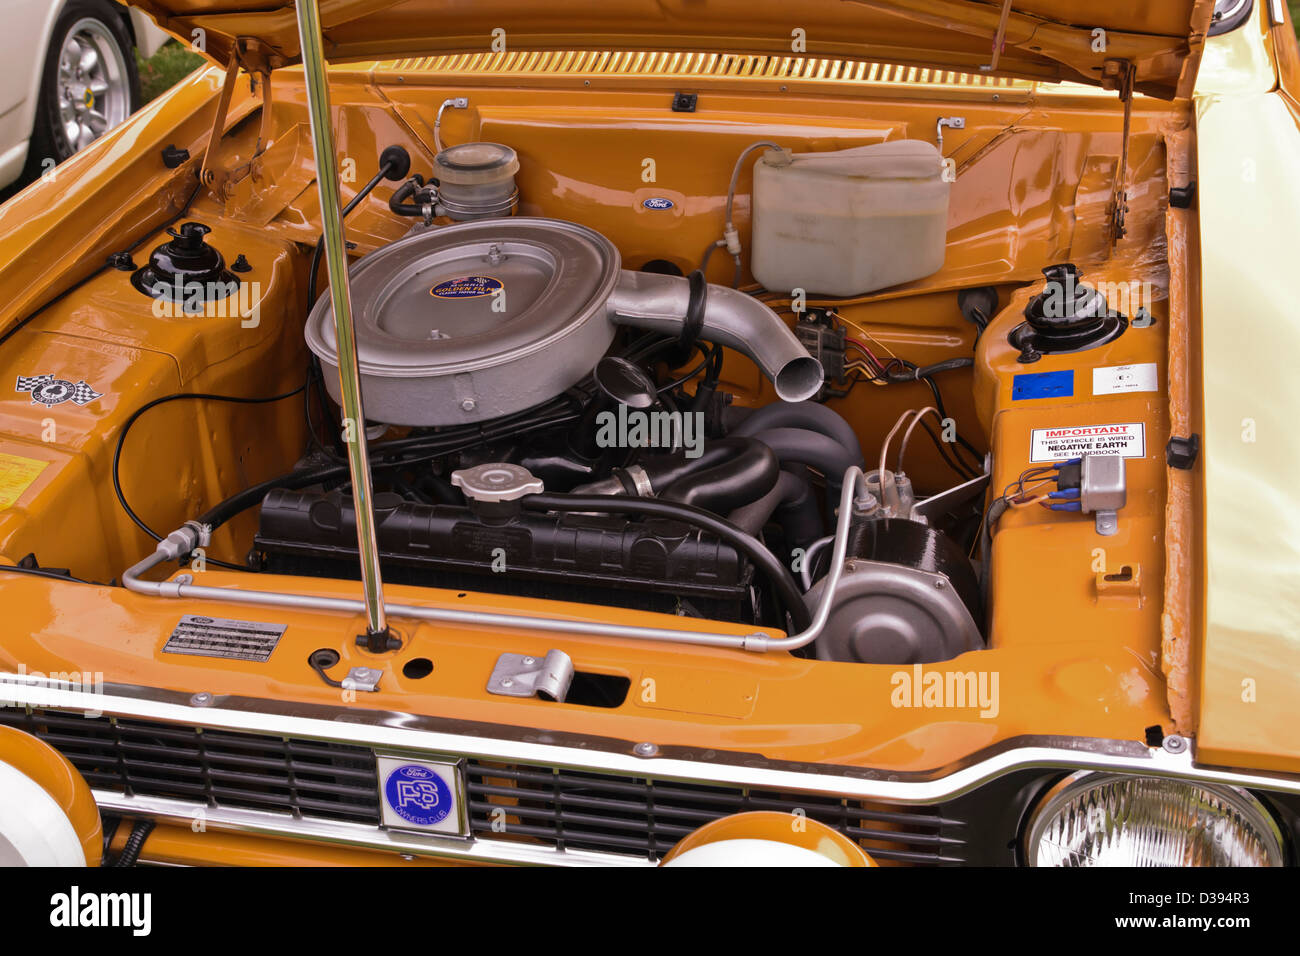 Ford Escort rs Mk1 Mexico engine 1599 cc S4 OHV - Stock Image